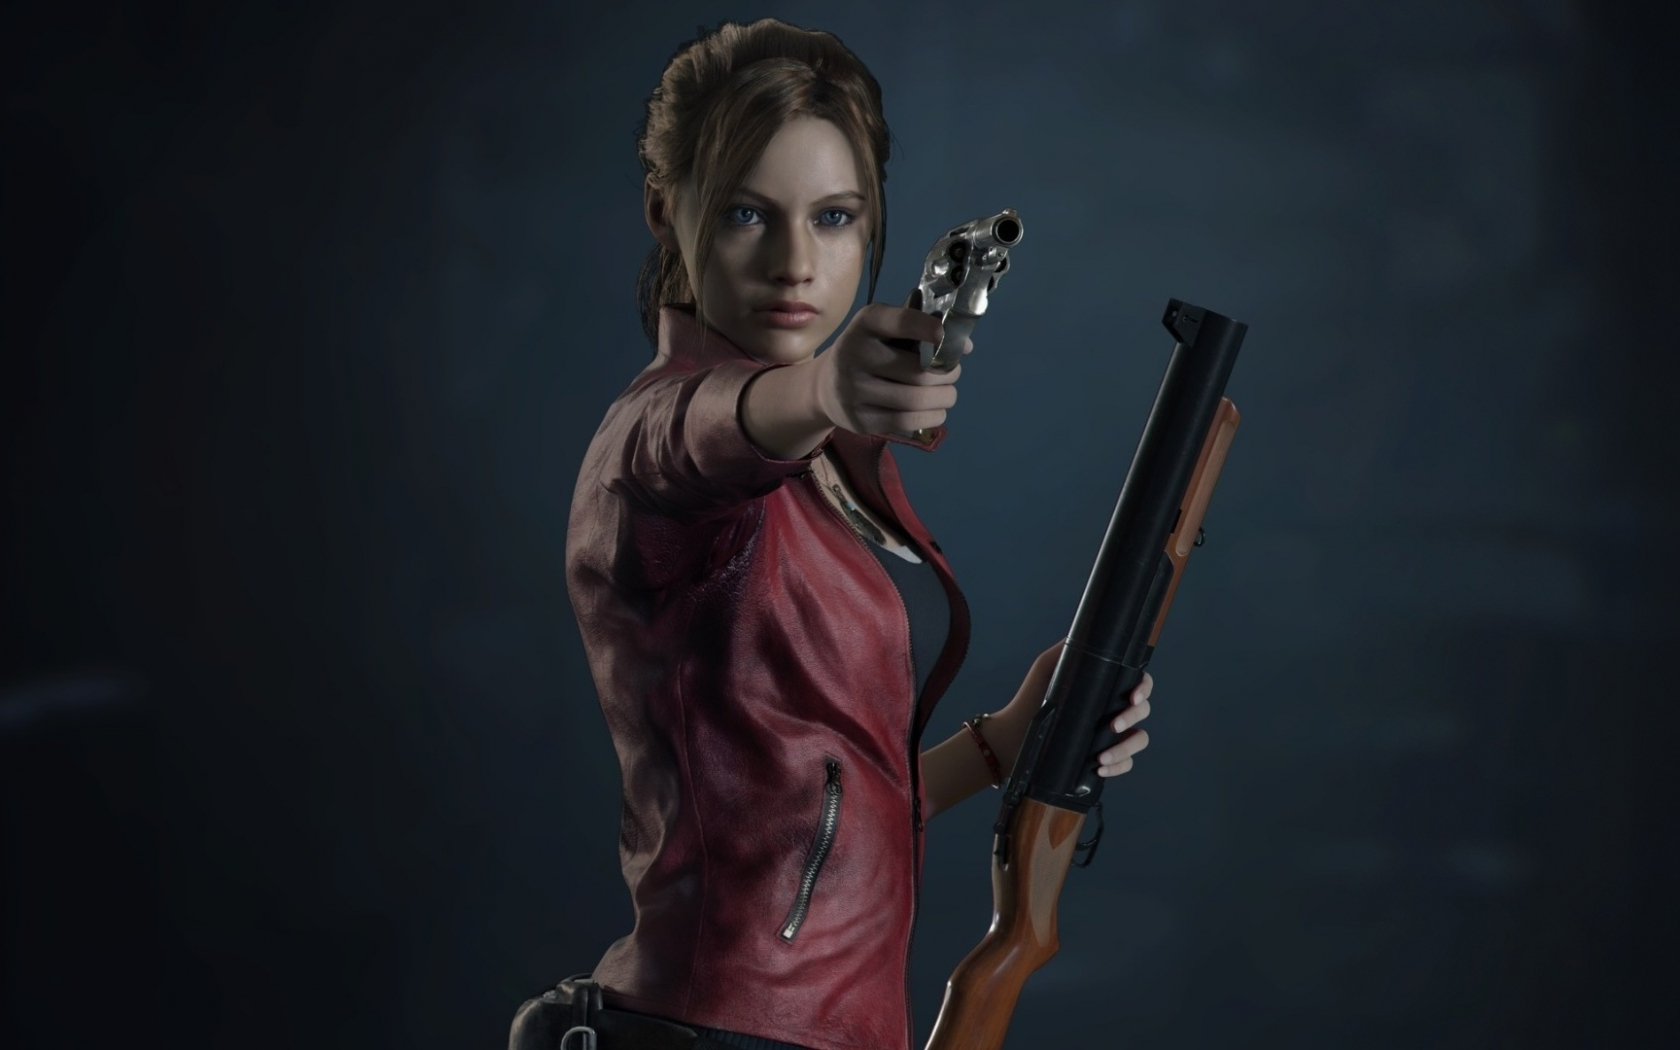 Resident Evil 2, video game, Claire Redfield, 1680x1050 wallpaper